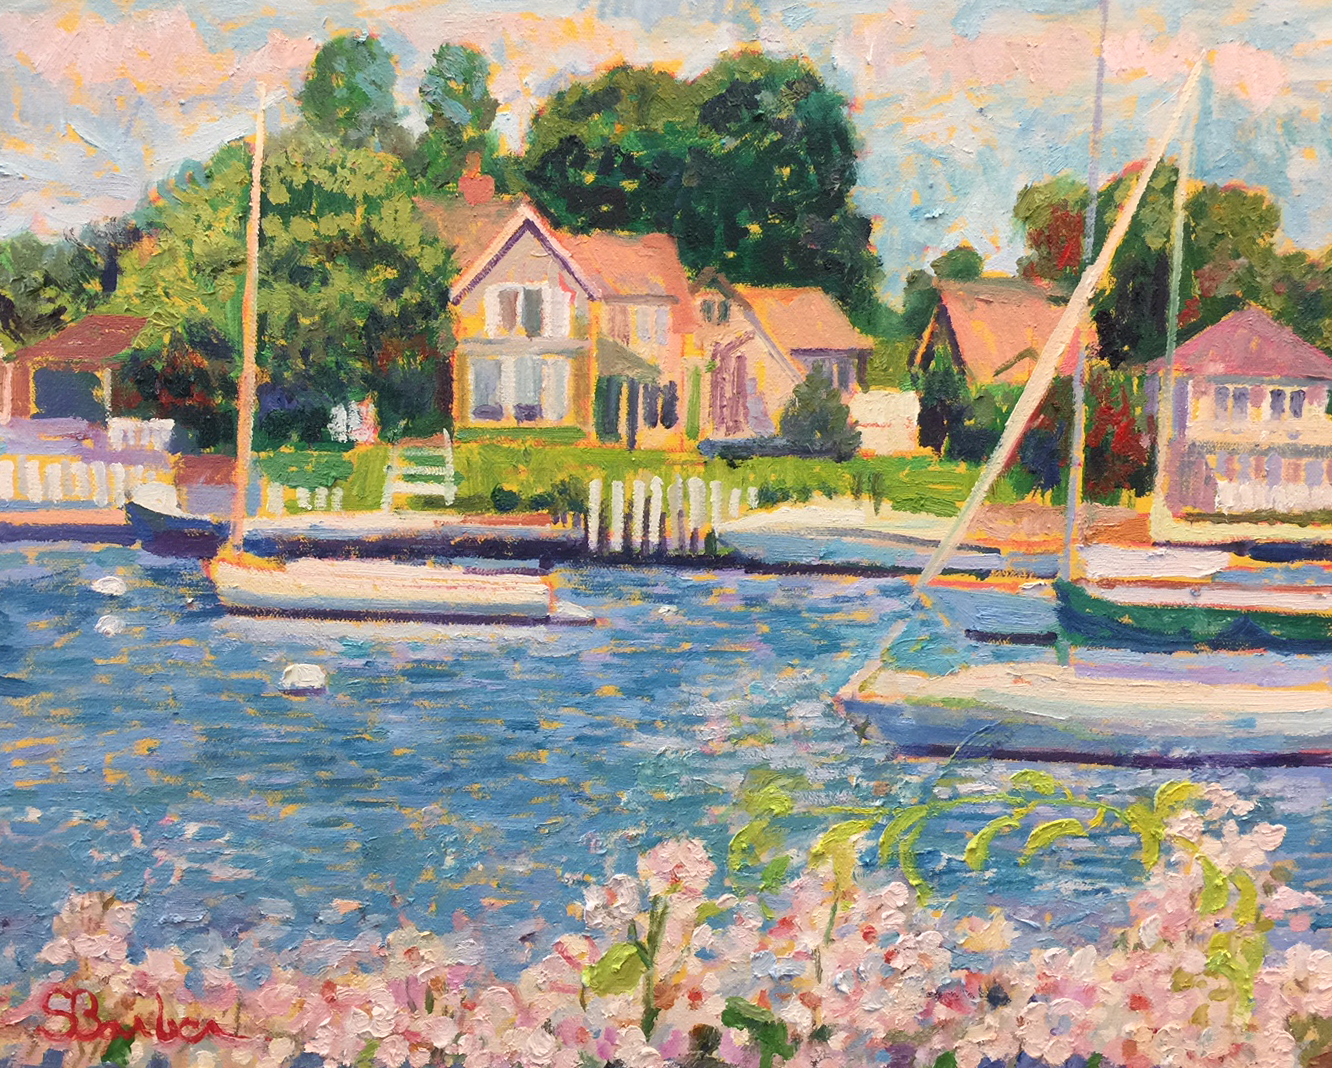 Sailboats in Falmouth Harbor |  16 x 20  | Oil on canvas